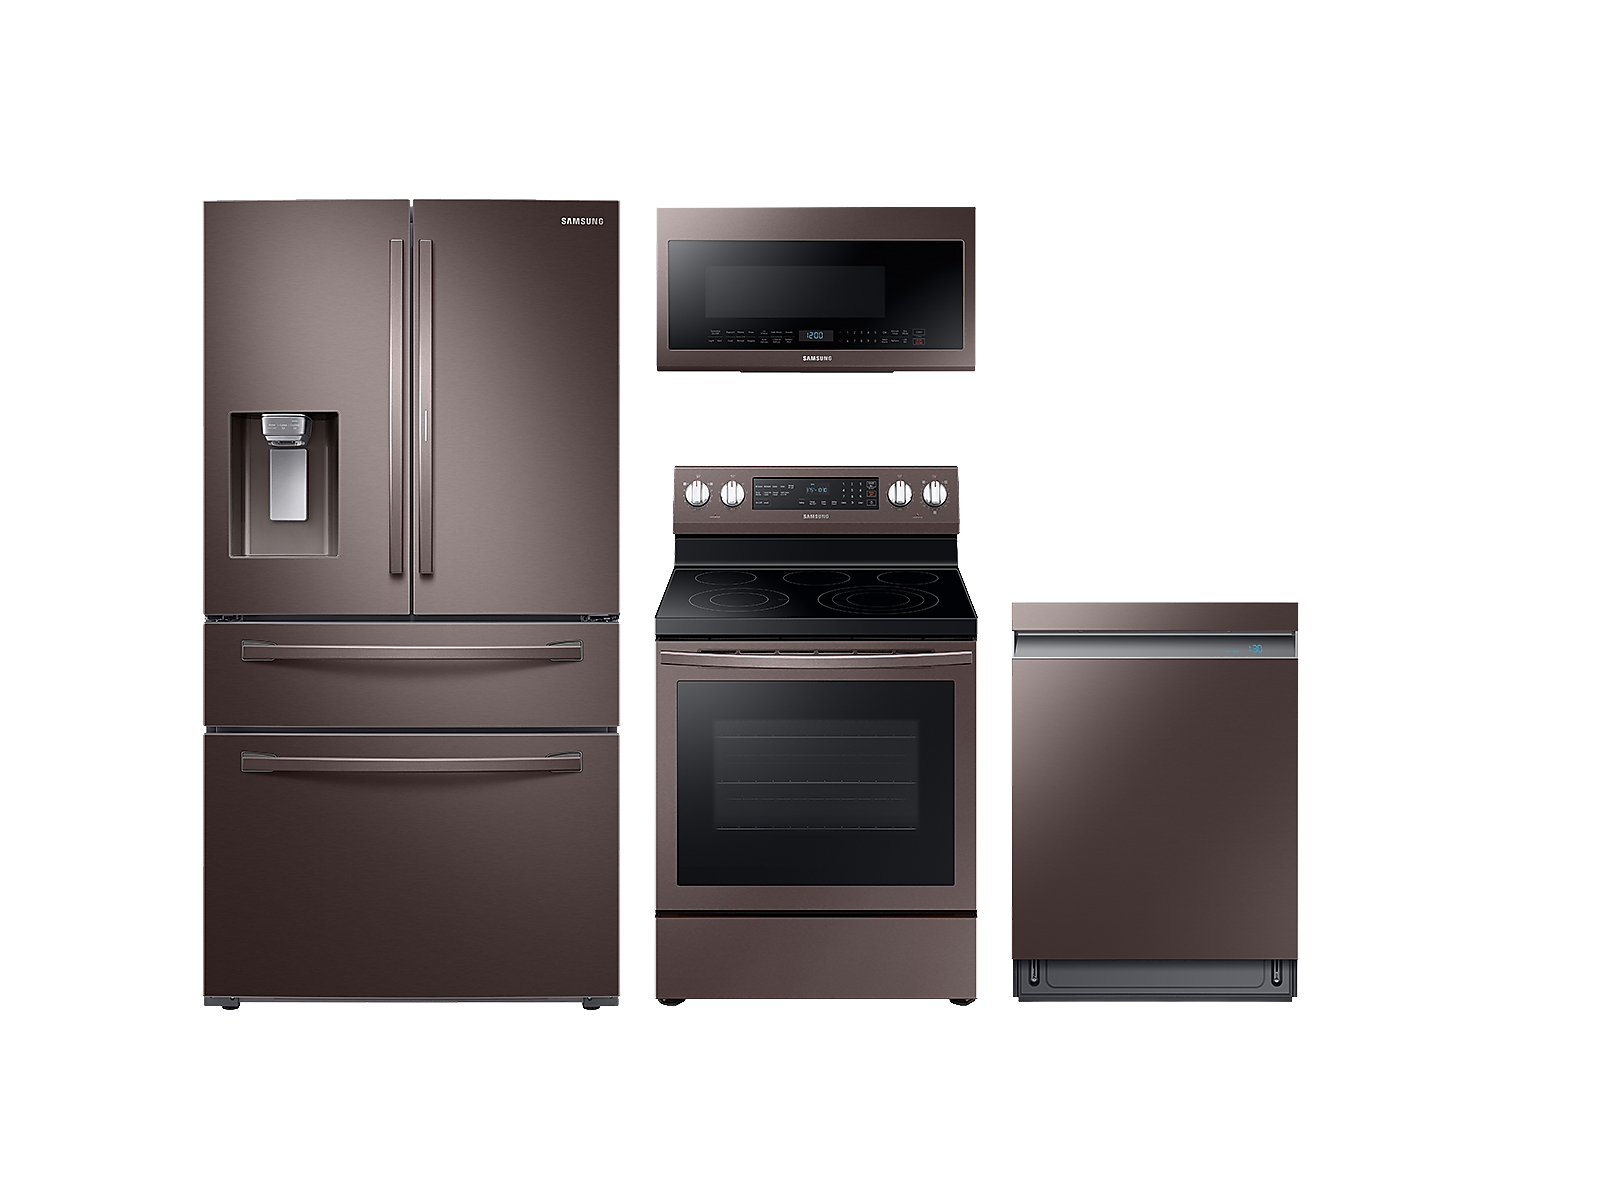 Samsung coupon: Samsung 4-door Refrigerator + Electric Range + Linear Wash Dishwasher + Microwave Kitchen Package in Tuscan Stainless(BNDL-1561027345608)